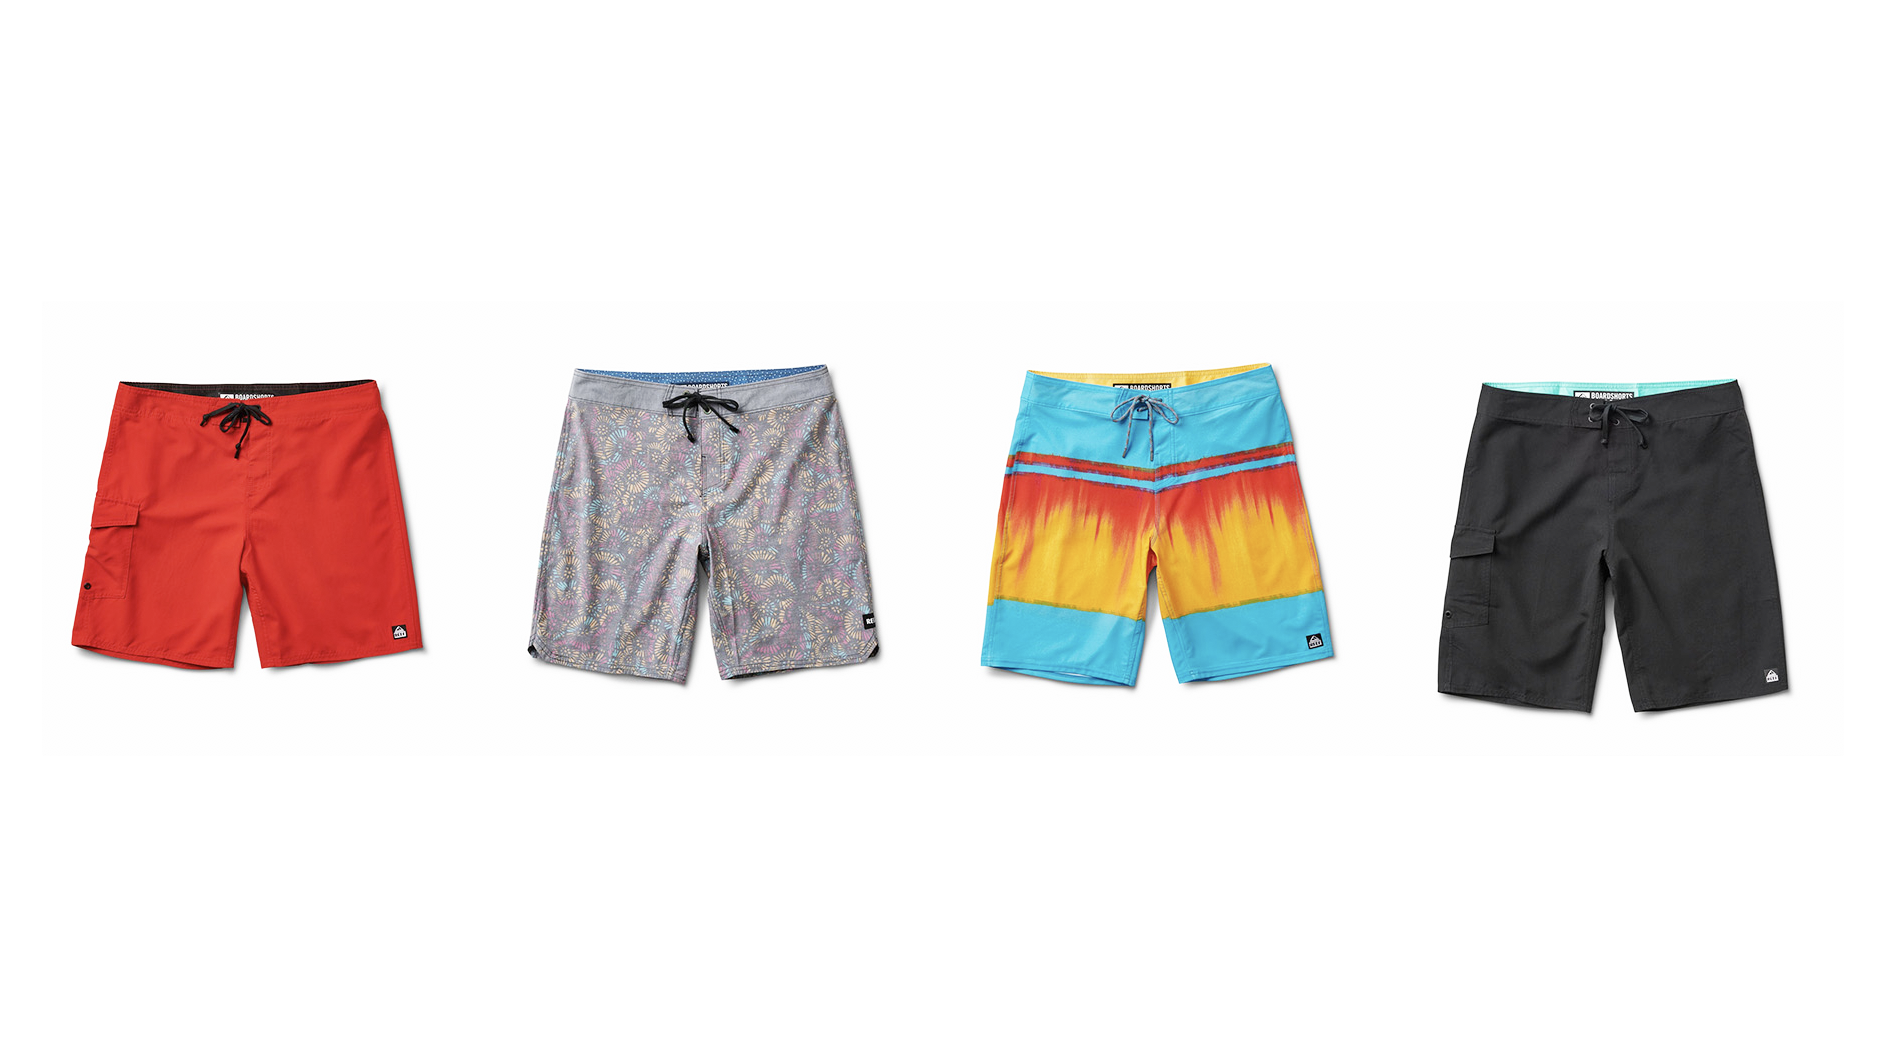 Four pairs of boardshorts